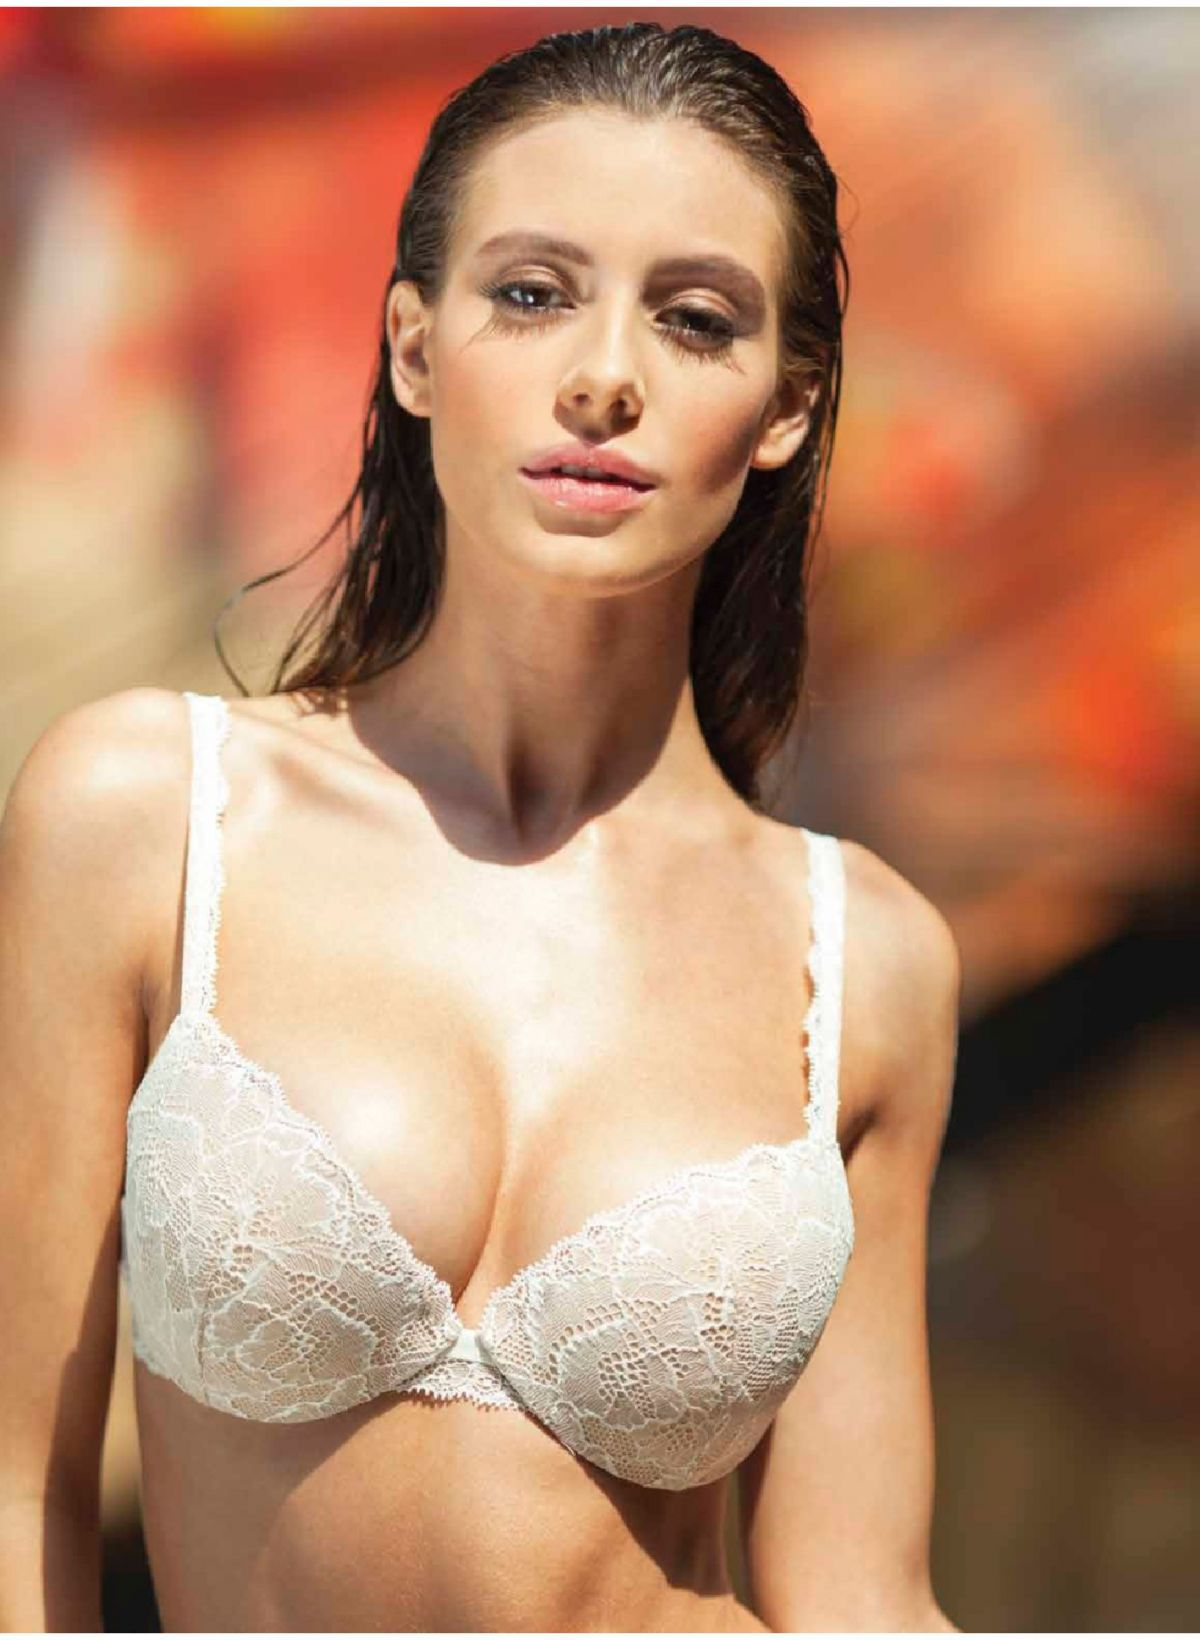 Alejandra Guilmant Topless 10 Best Alejandra Guilmant Images In 2019 Mexican Models